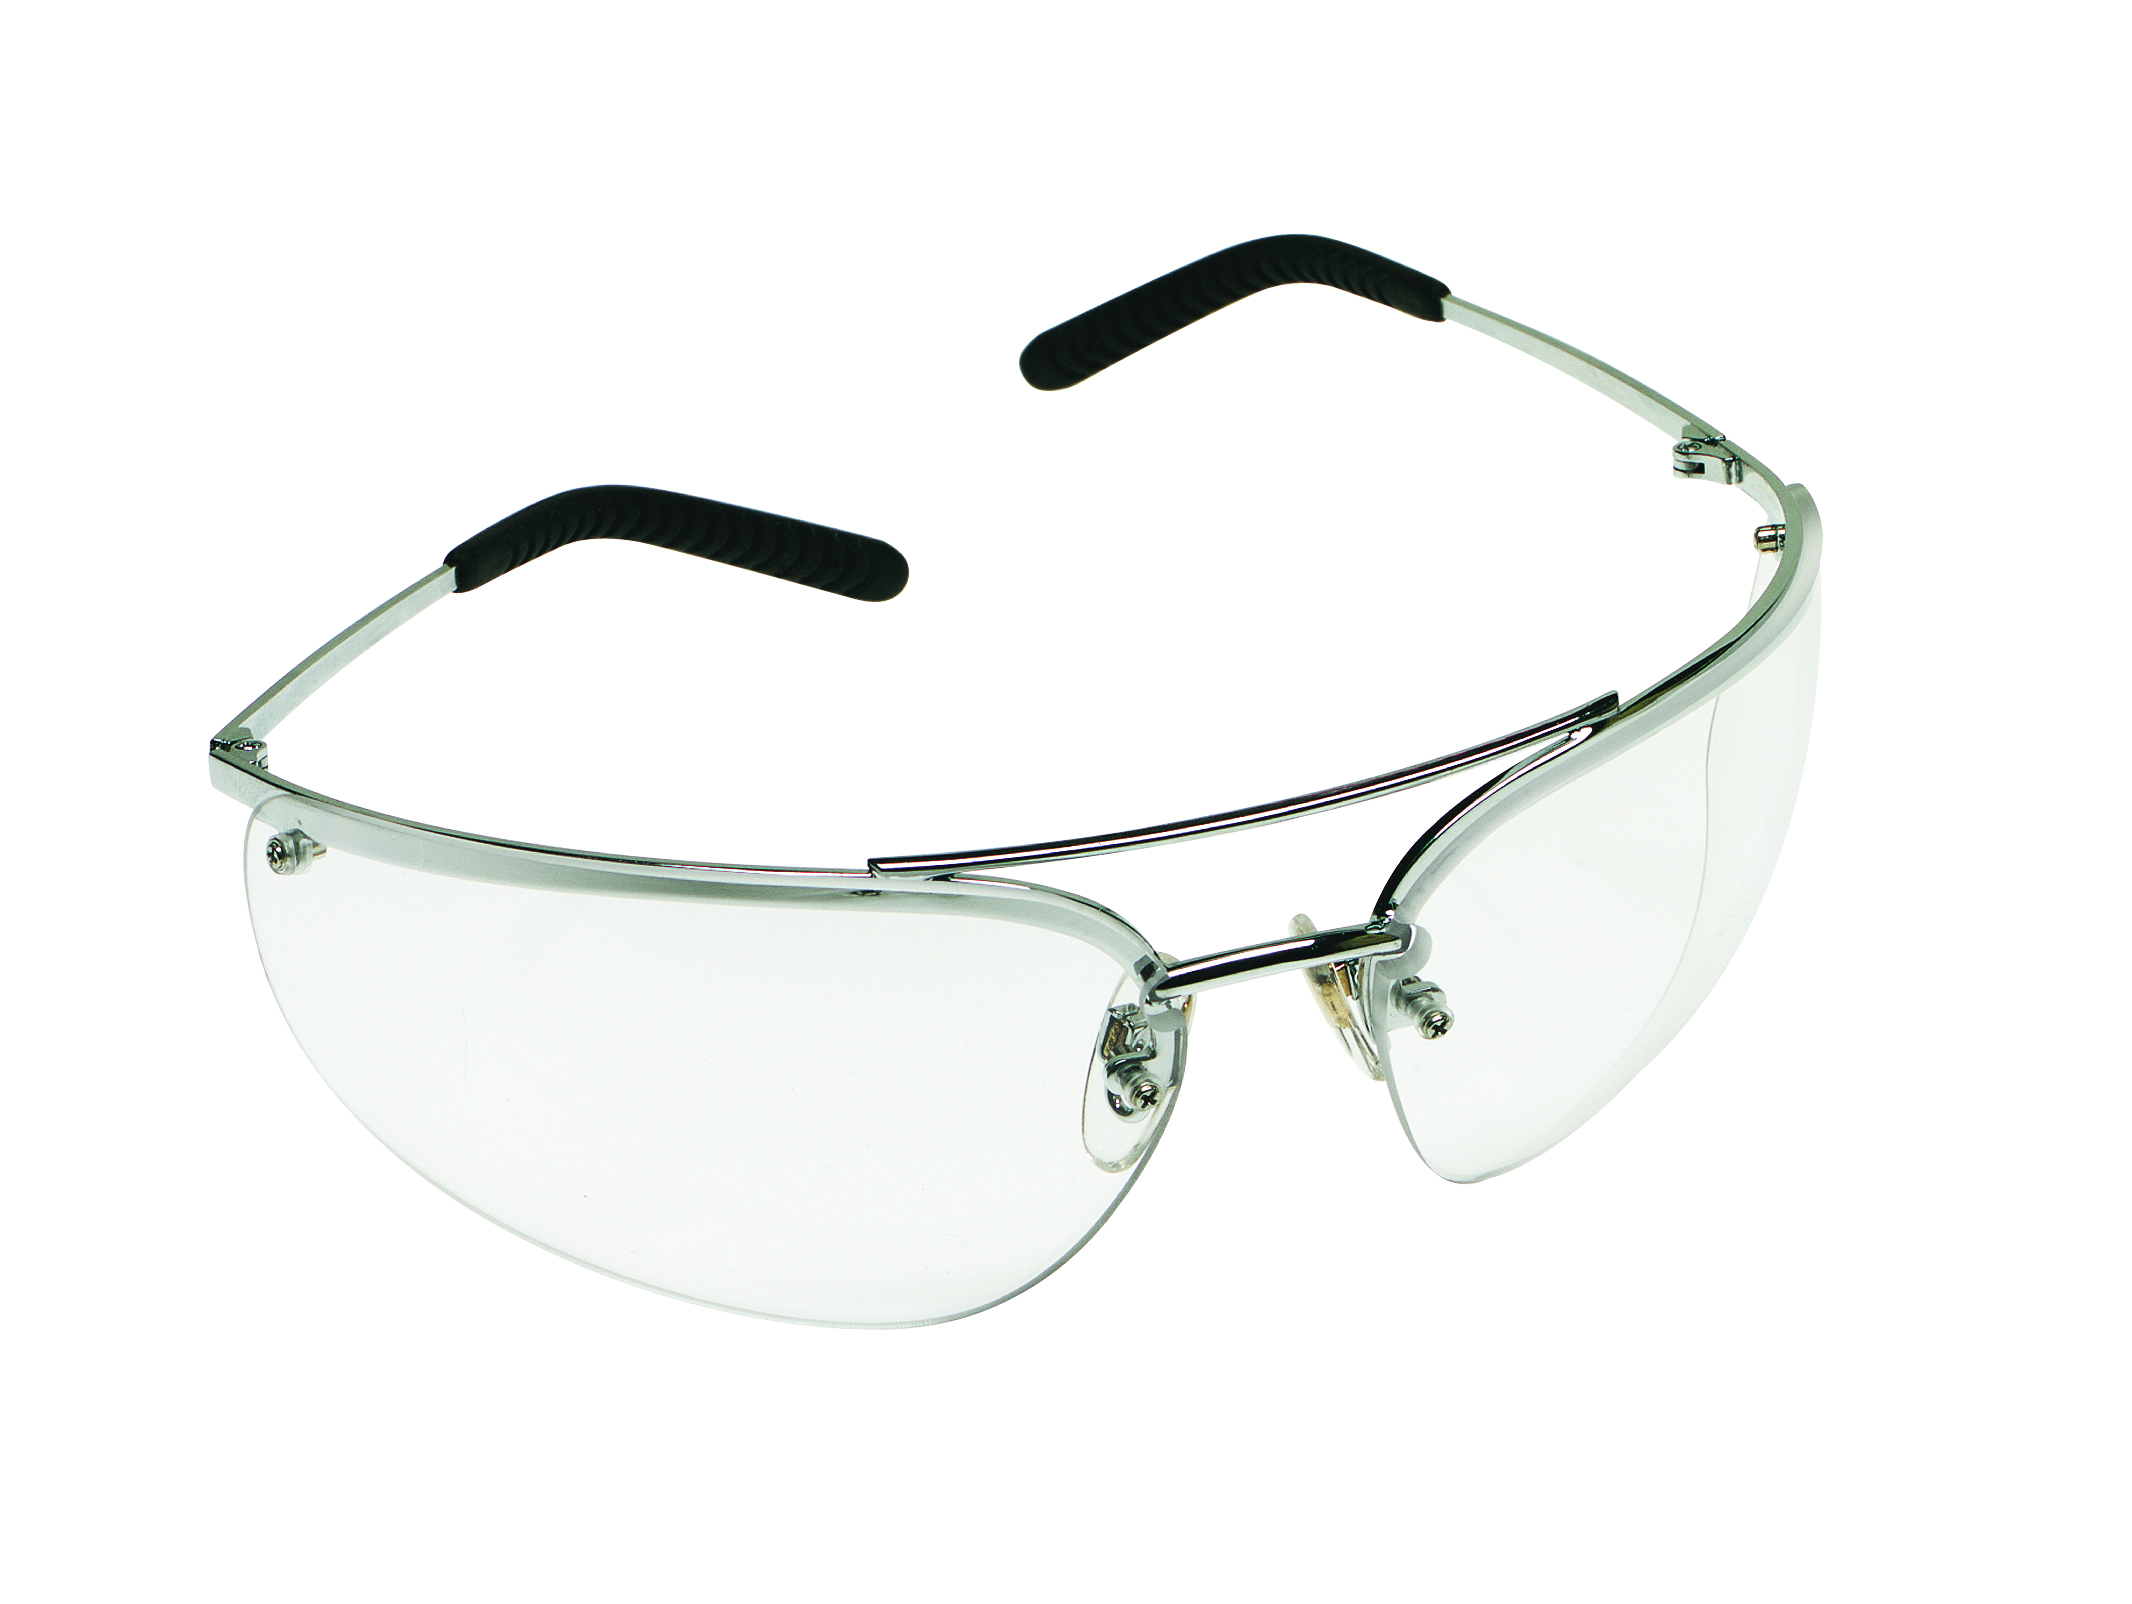 15170-10000-20 - 3M™ Metaliks™ and Metaliks™ Sport Safety Eyewear-Clear Lens, Polished Metal Frame-----UOM: 1/EA